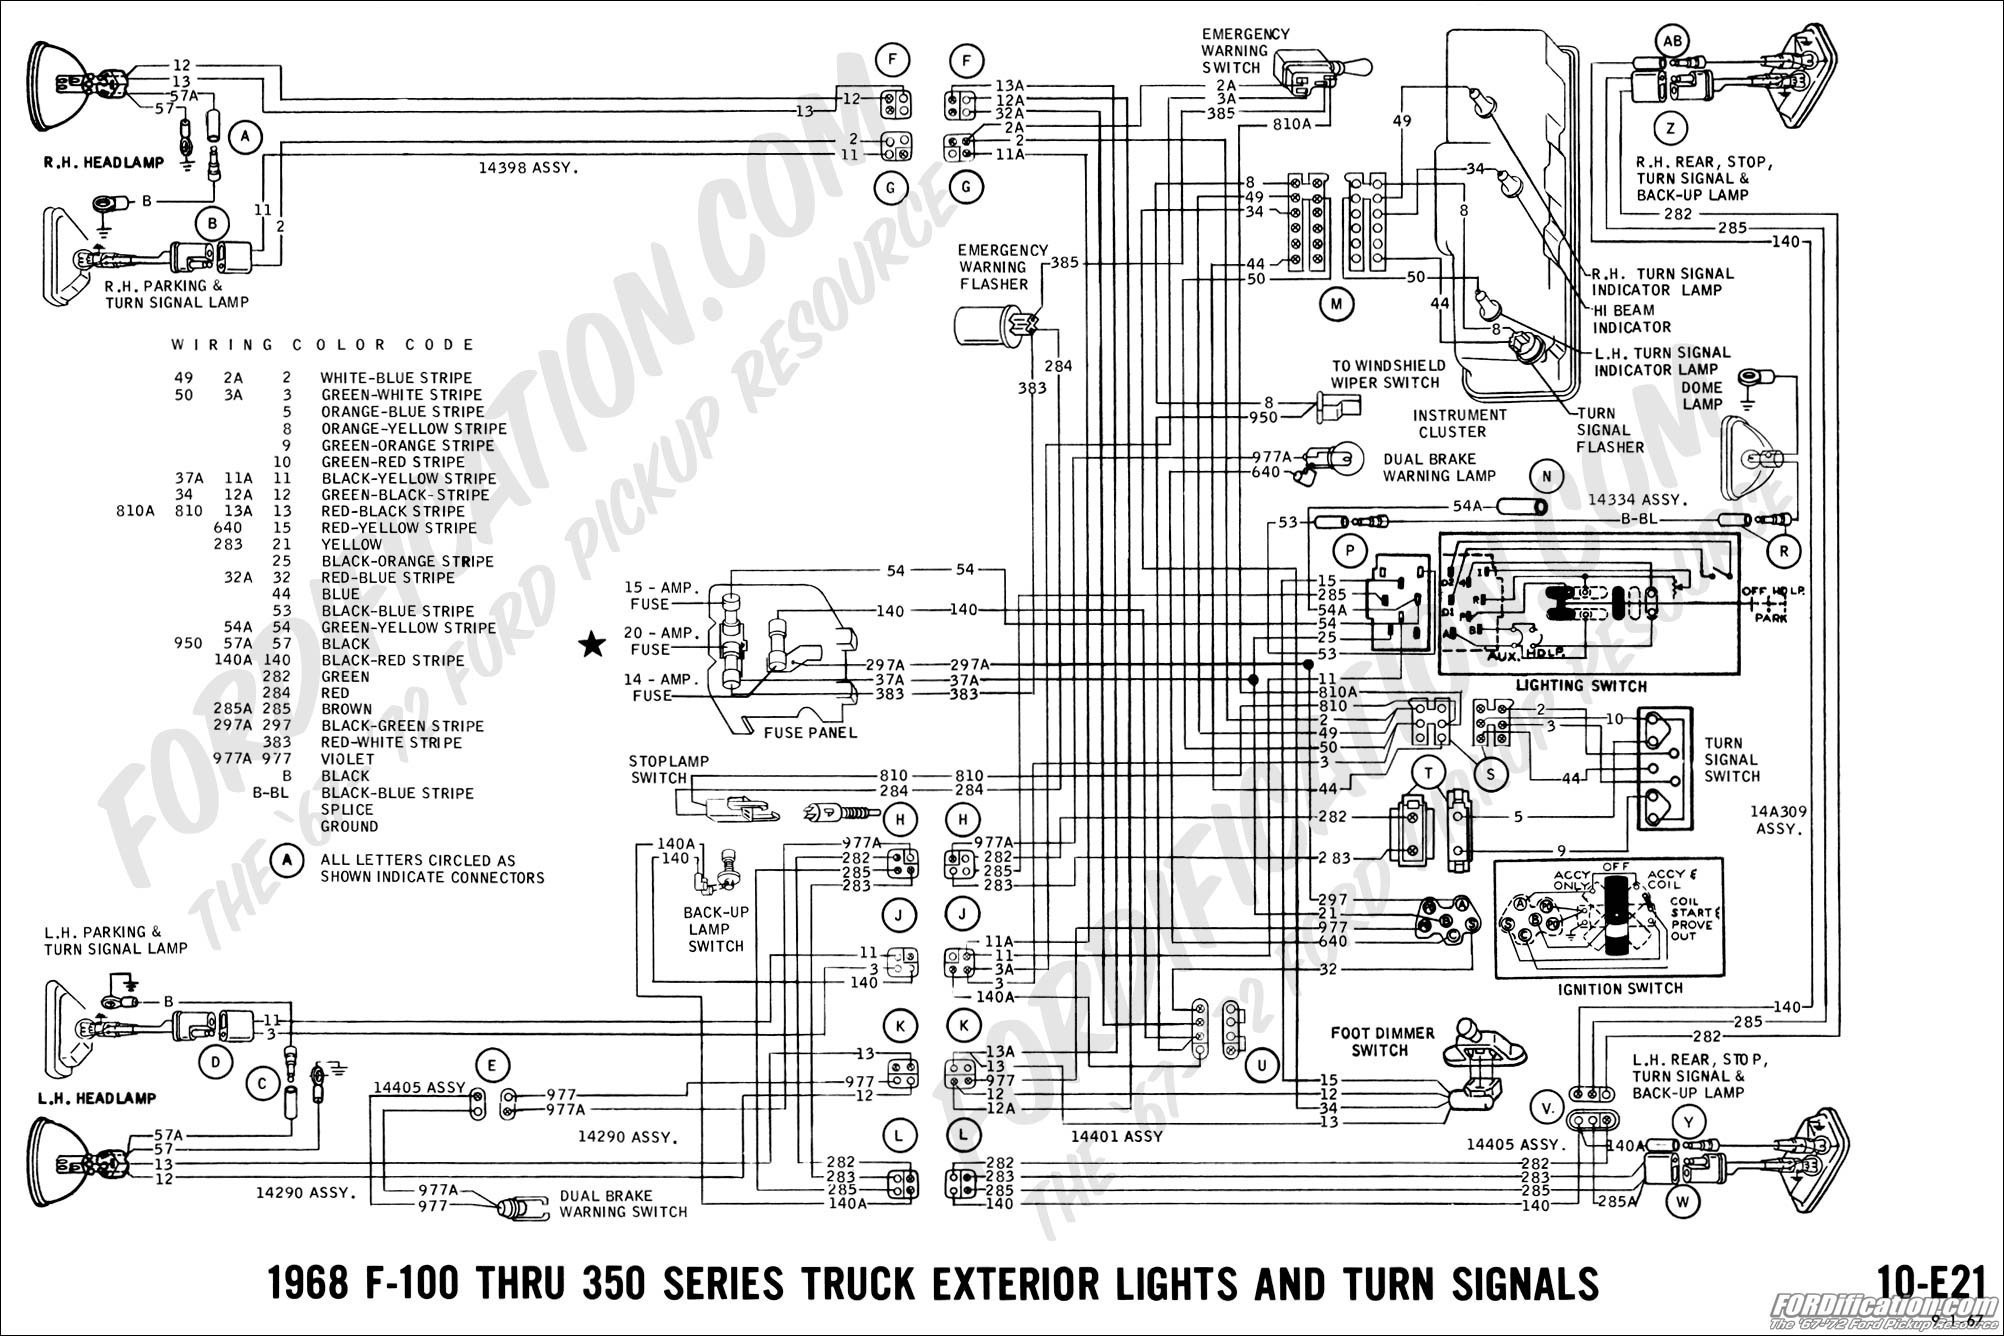 Truck Wiring Diagrams Free ford Truck Wiring Diagrams Free Citruscyclecenter